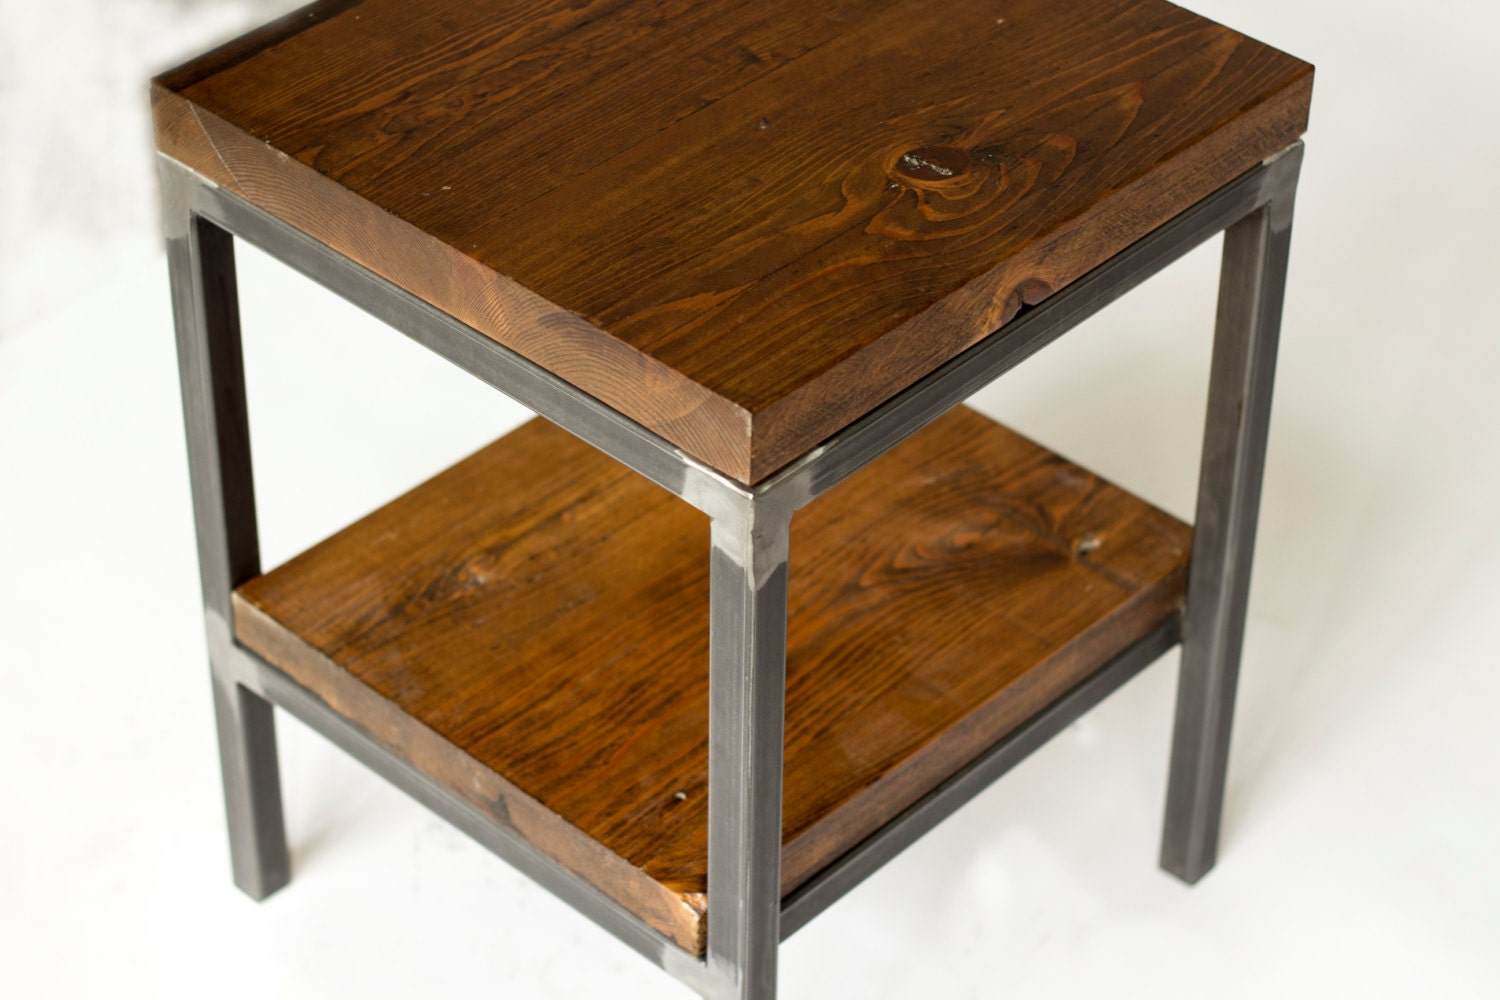 Reclaimed wood side table end table bare design for Reclaimed wood end table